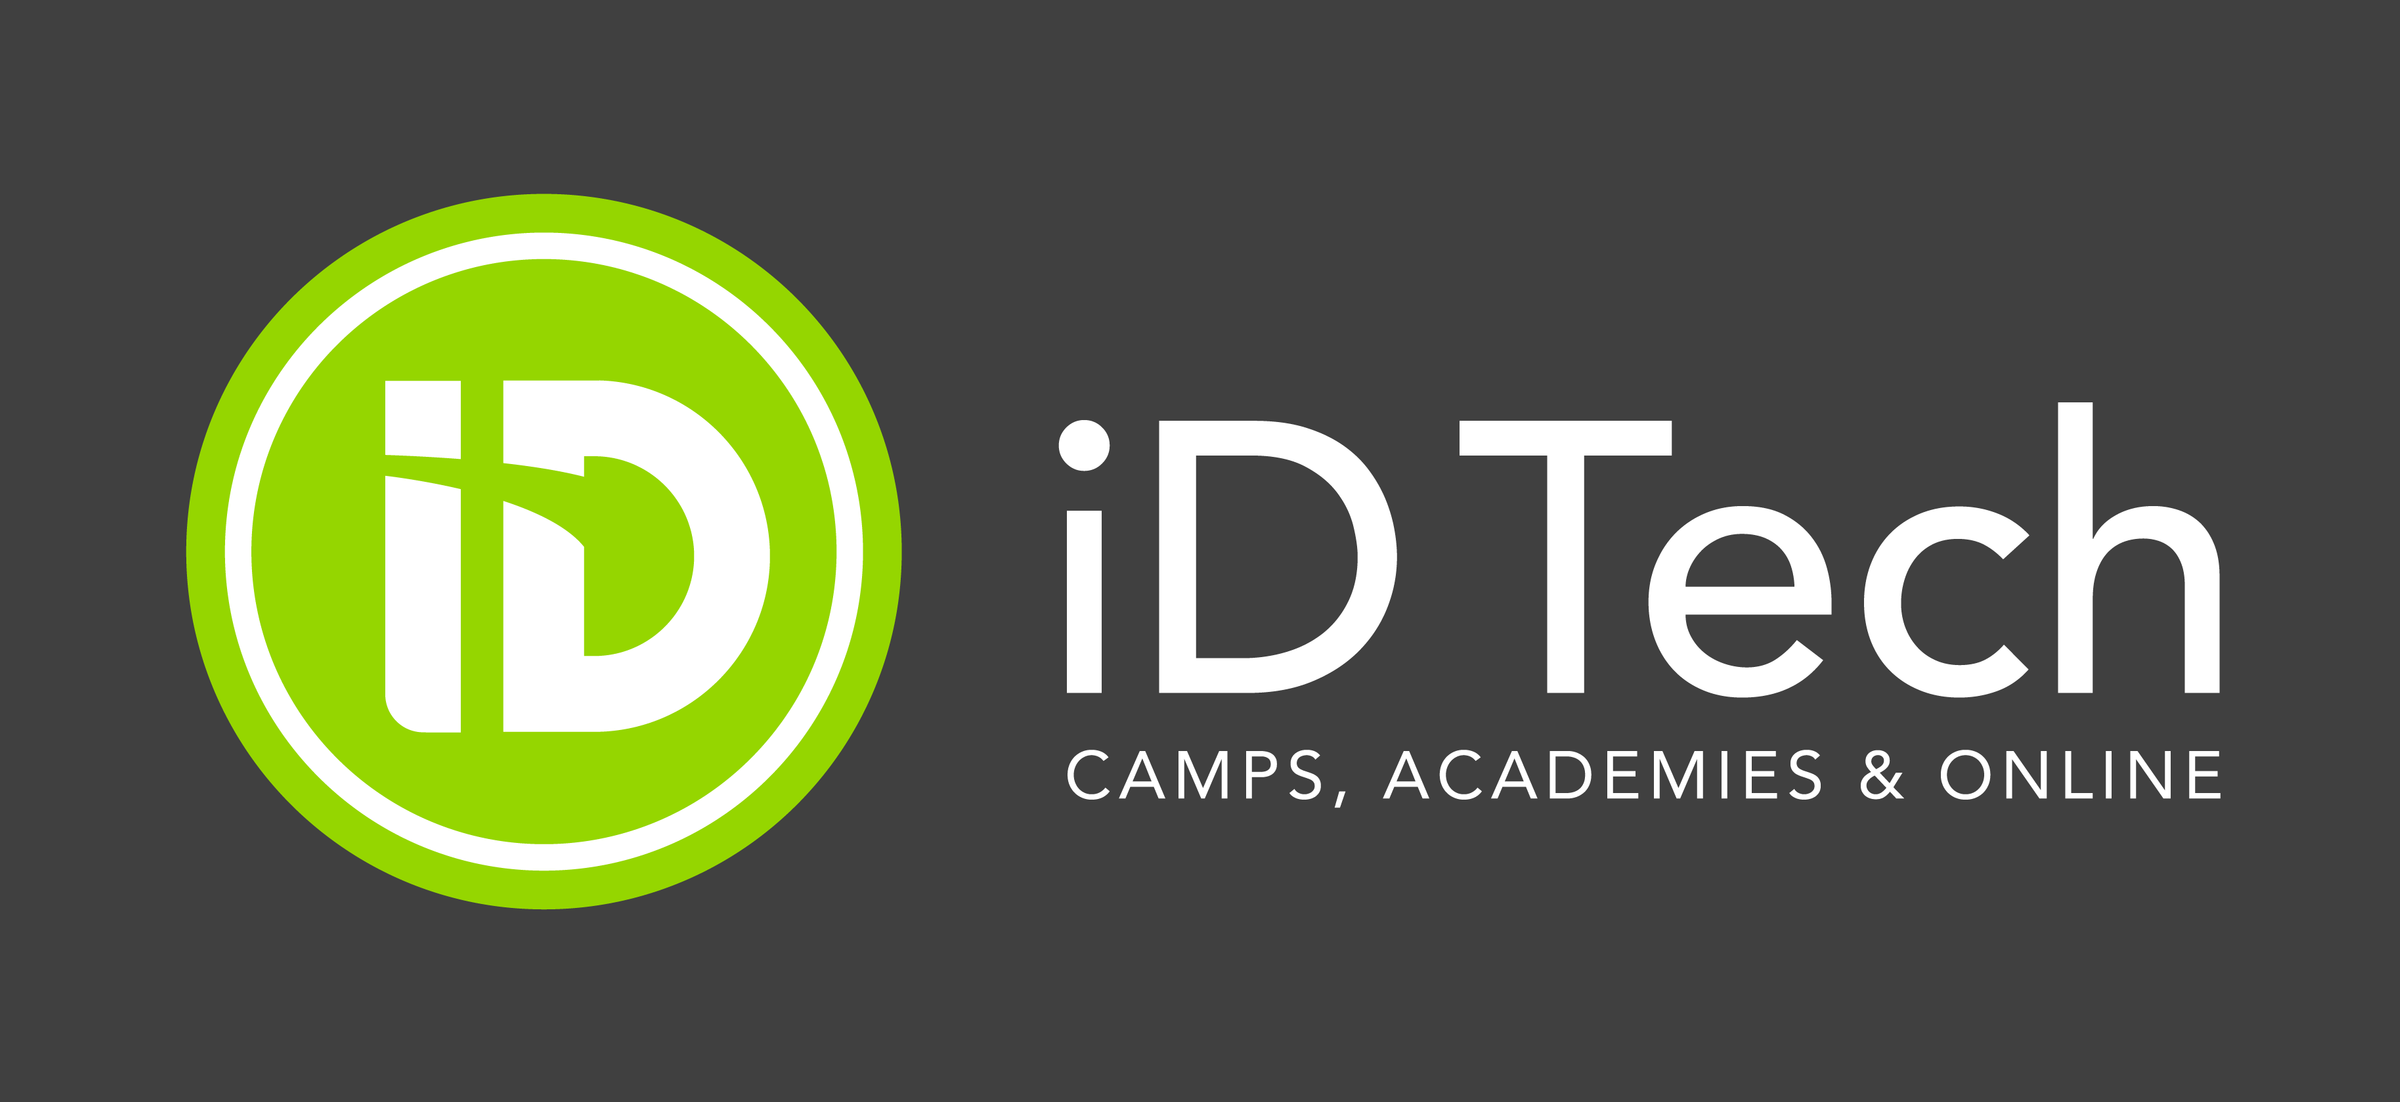 iD Tech Camps: #1 in STEM Education - Held at Seoul National University